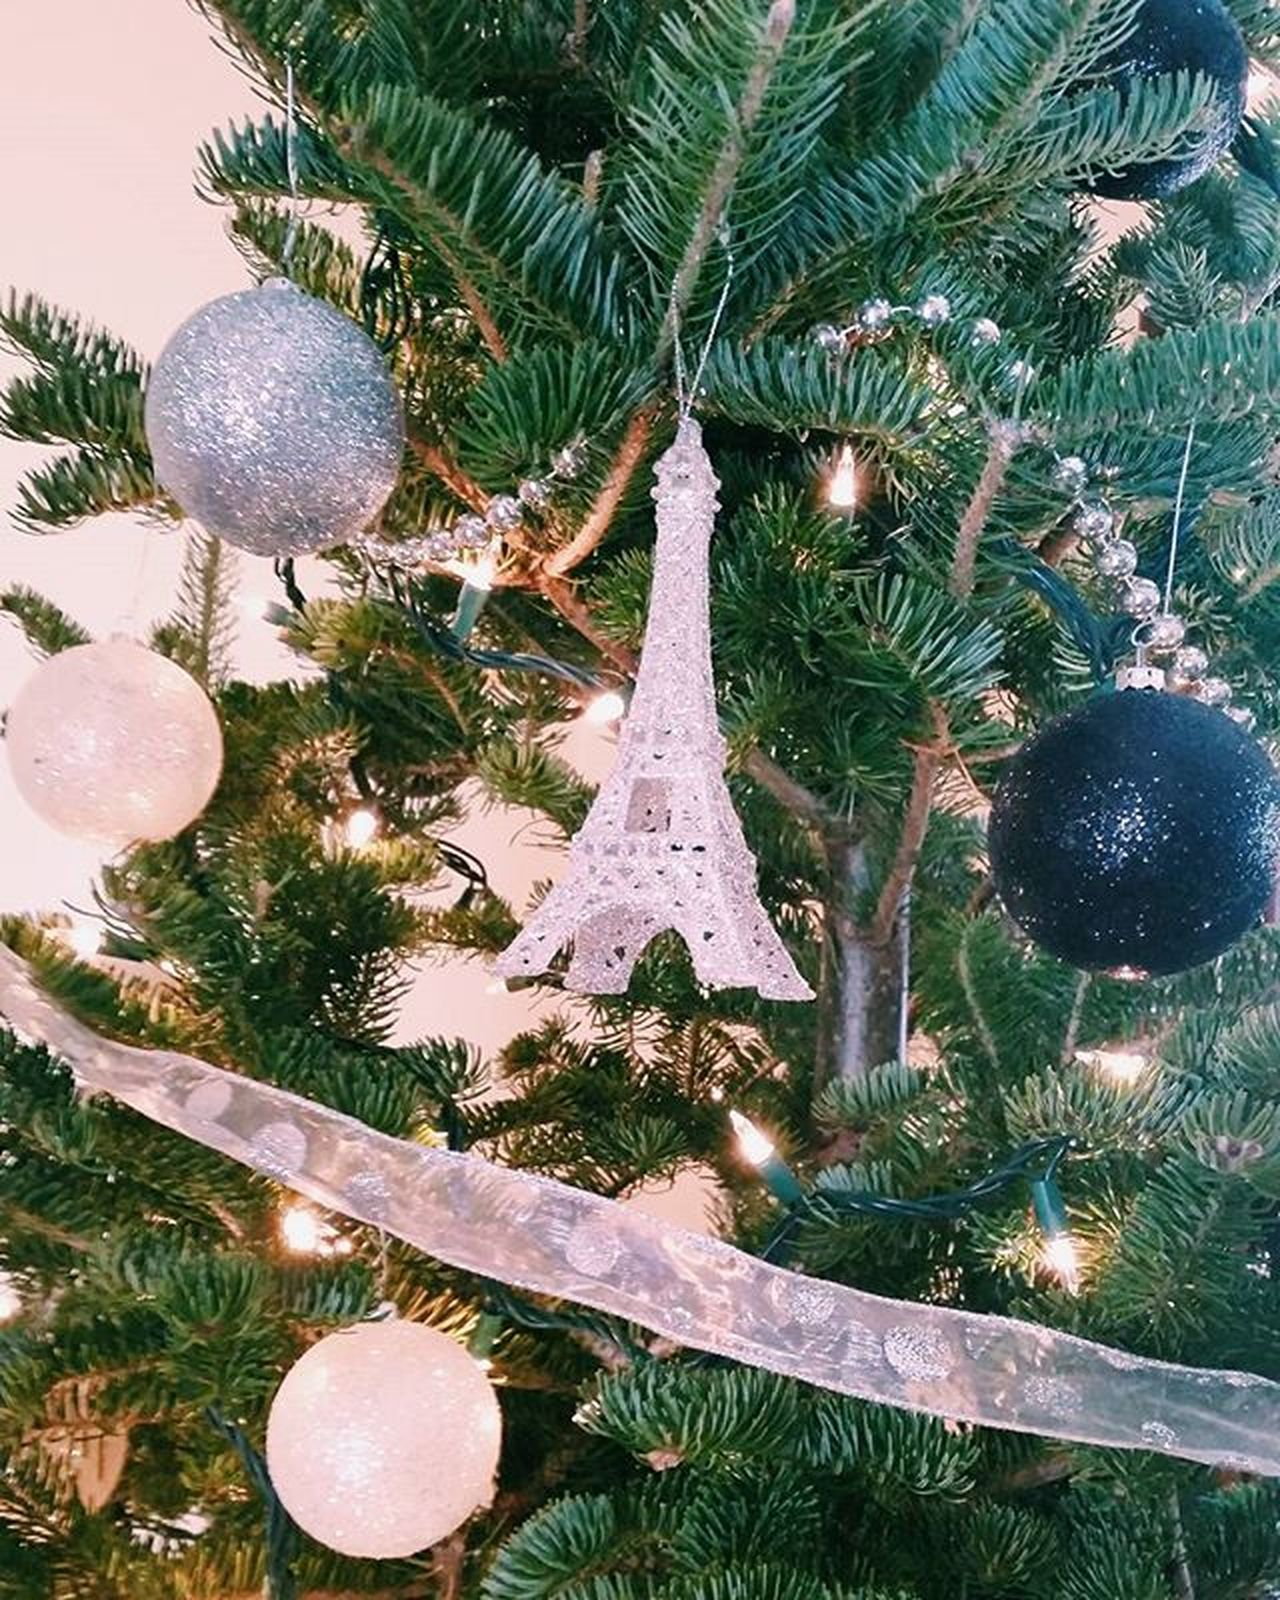 Last picture of the Christmas tree, I swear! I took it this morning so the natural light hit the tree so elegantly and the picture came out clear! 😚 Christmas ABMLifeIsColorful Newengland Thatsdarling Liveauthentic Pursuepretty Postitfortheaesthetic Flashesofdelight Livethelittlethings Christmas Thehappynow Savoryourseason Ornaments Christmastree Solovelysofree Chooselovely Agameoftones Sparkly Silver